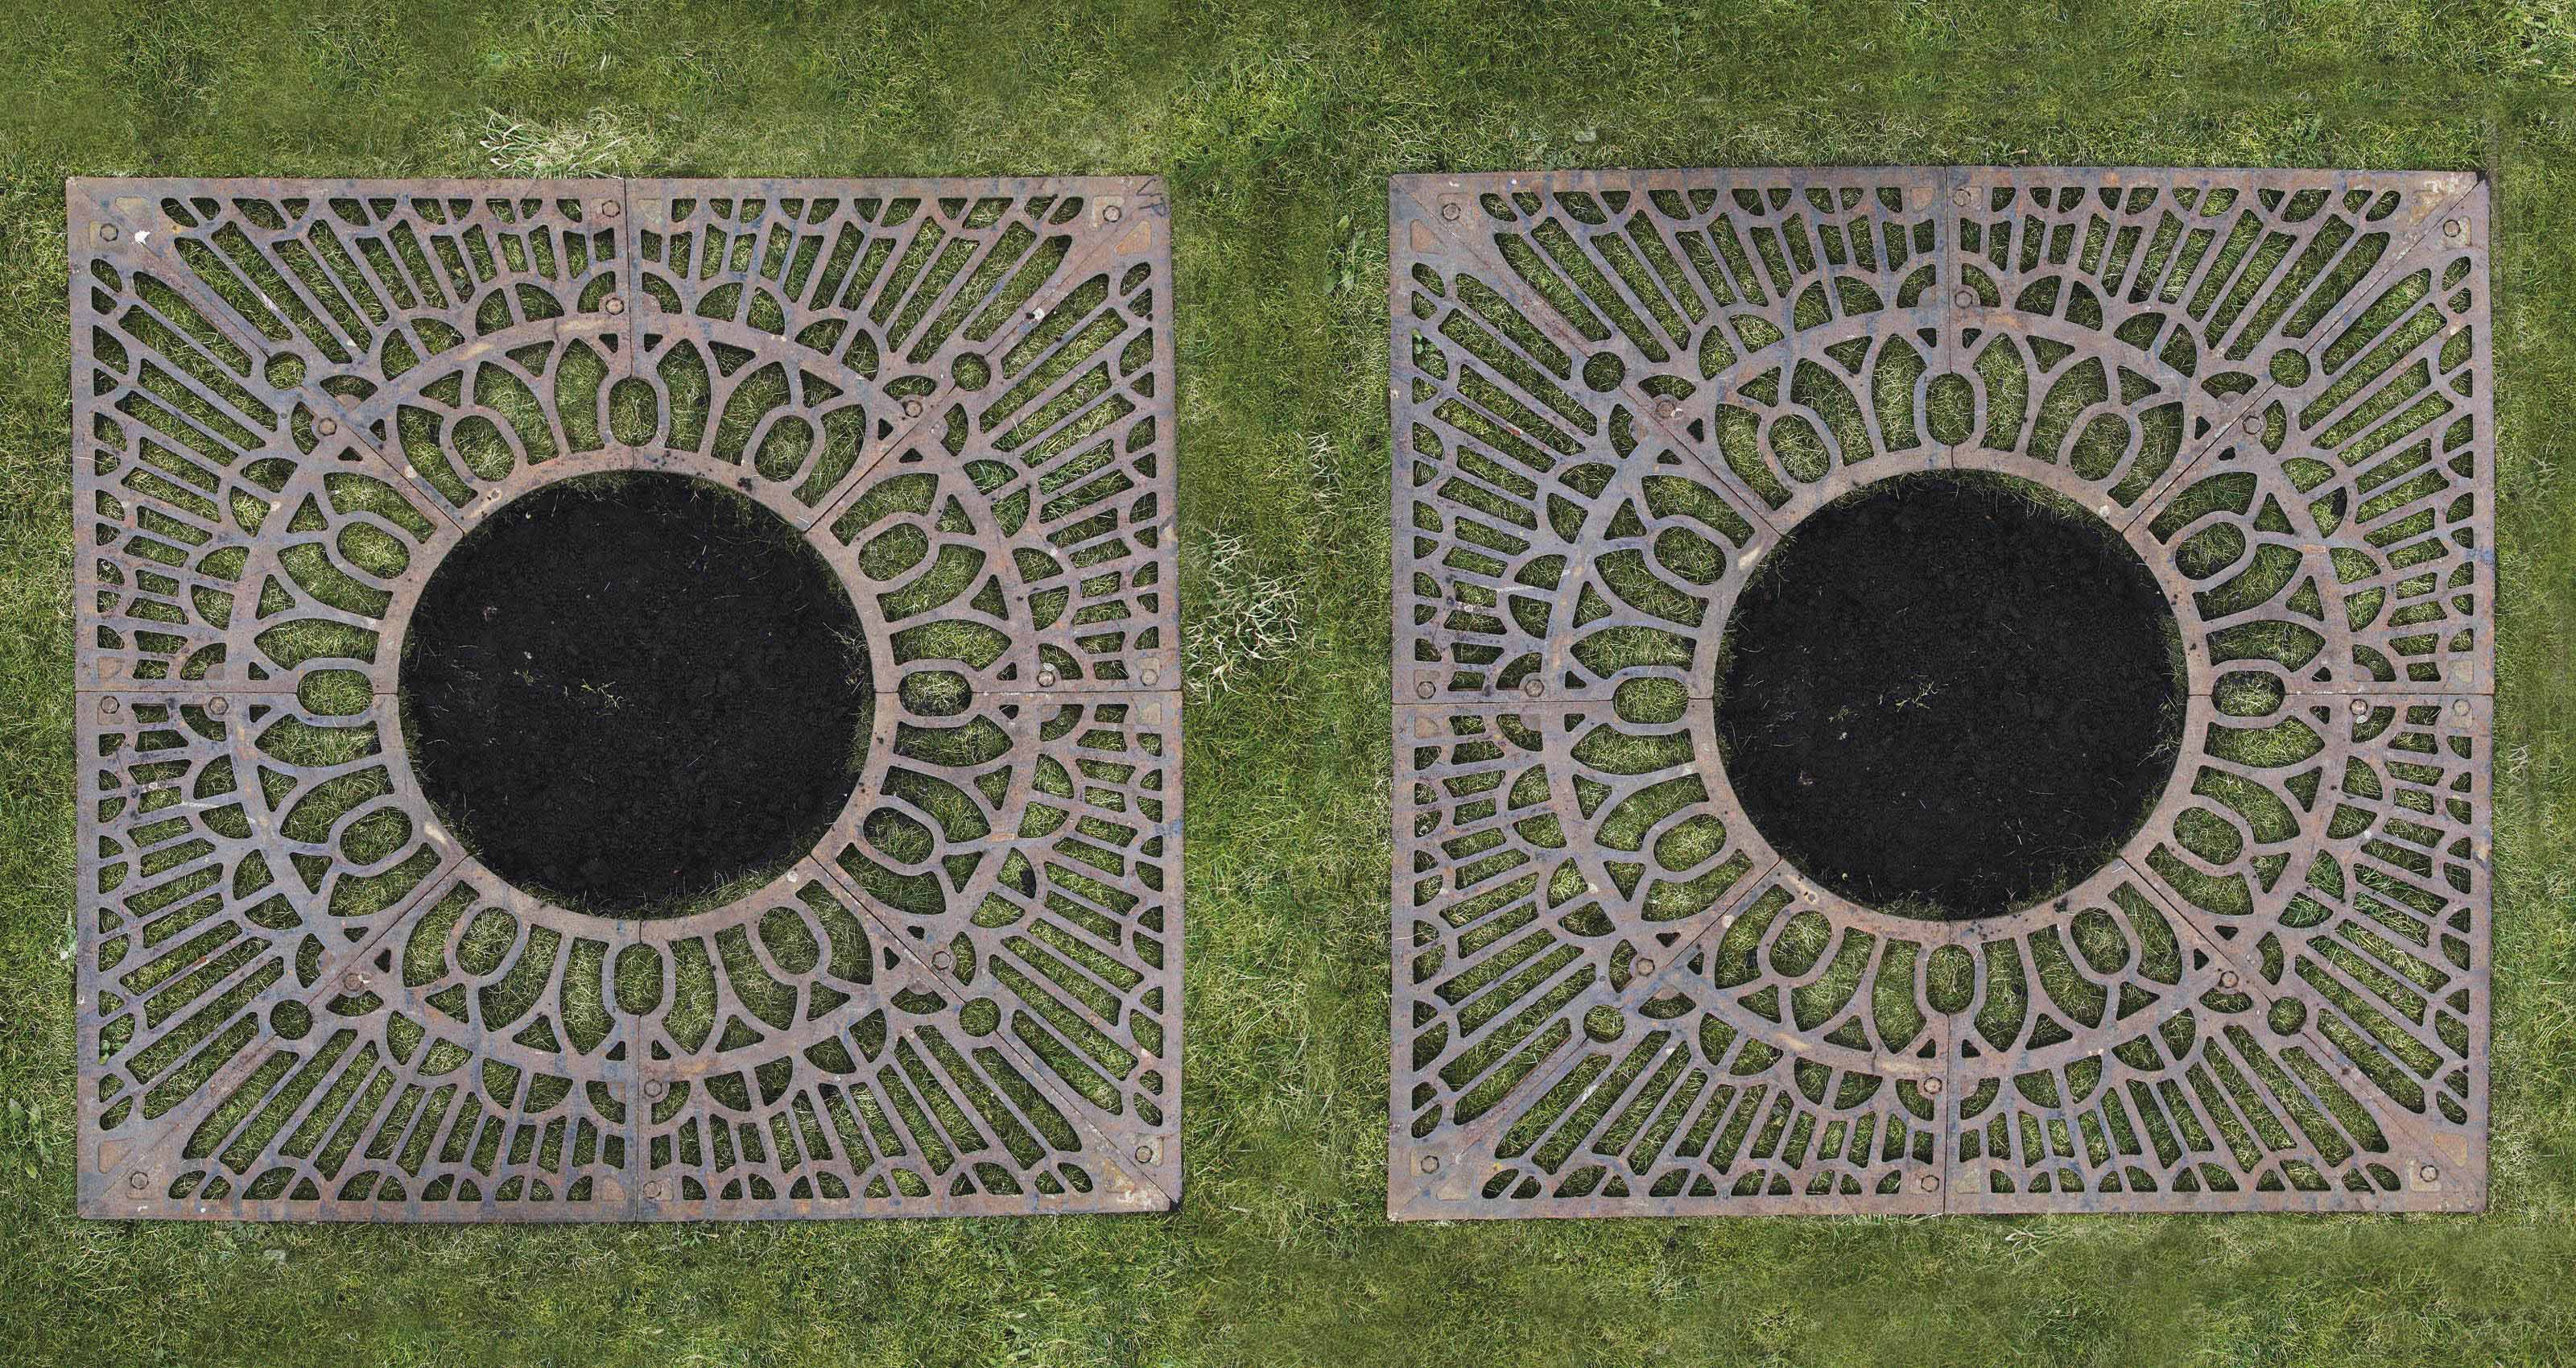 A pair of cast-iron tree grilles